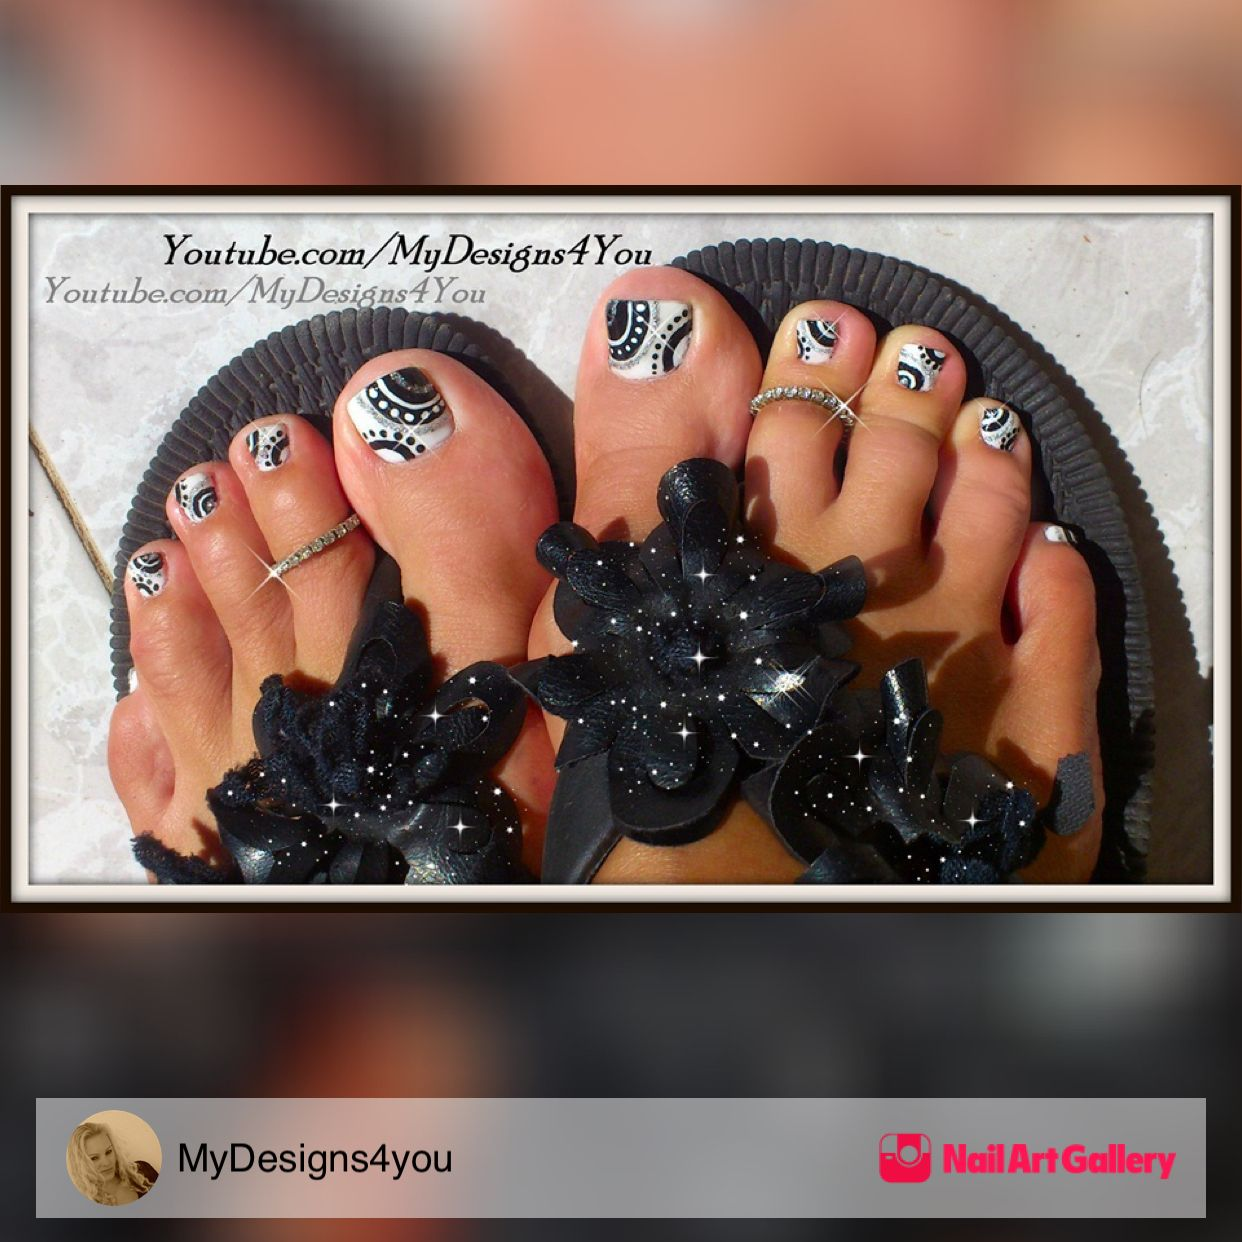 Black And White Toenail Design By Mydesigns4you Via Nail Art Gallery